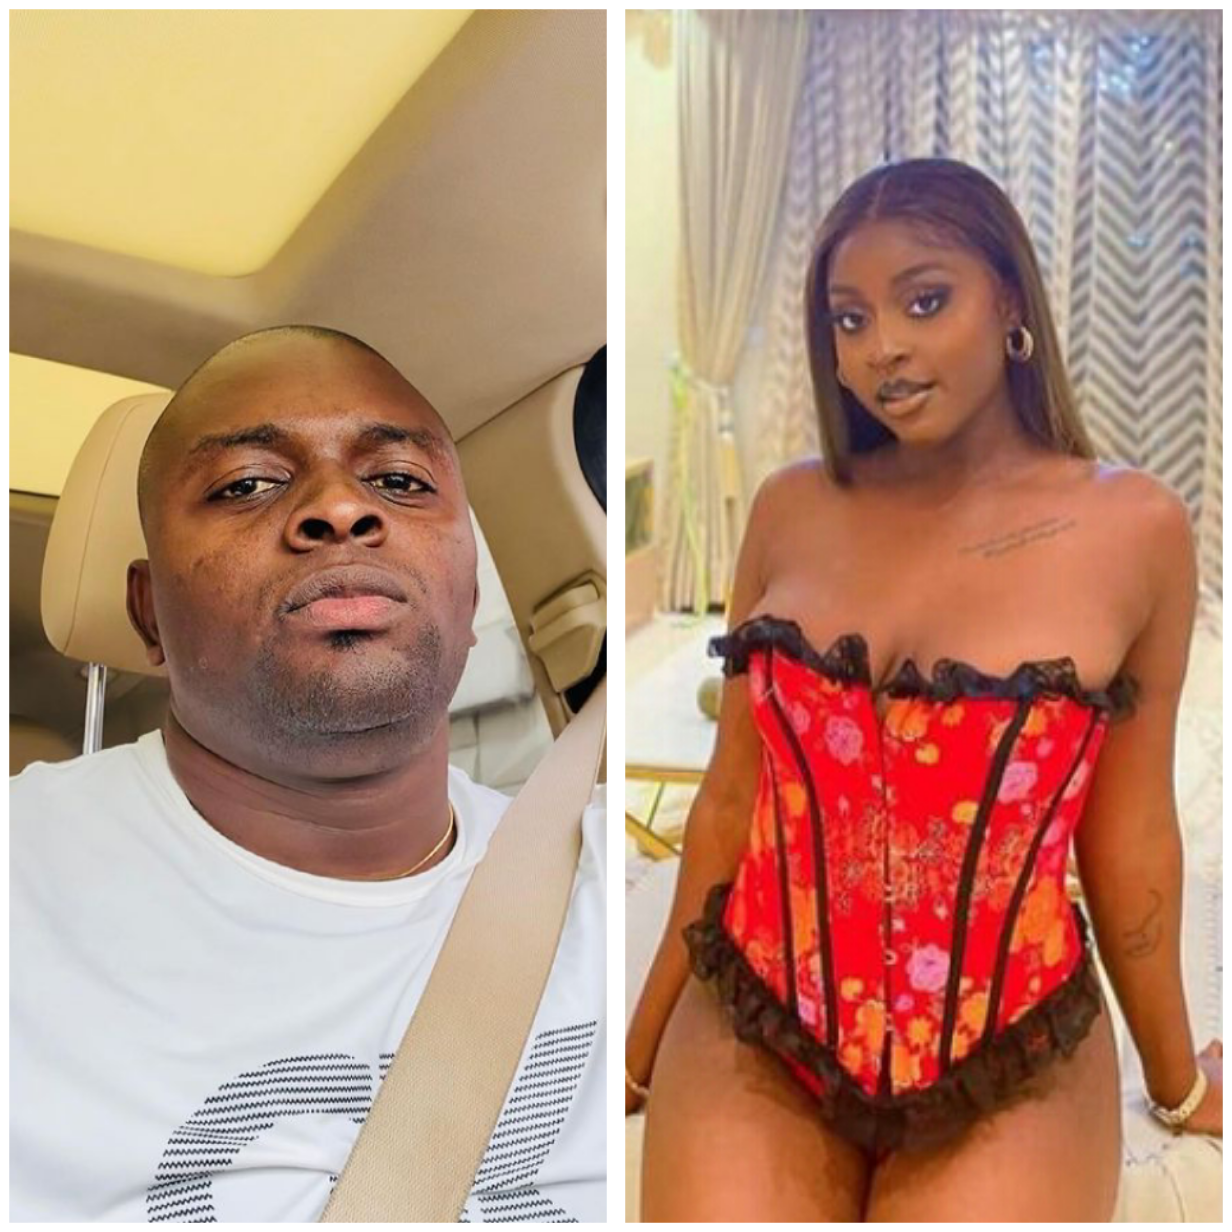 Update: Landlord who gave tenant a quit notice drags her, claims she parades around naked, beat up his security guard, snatched another woman's boyfriend